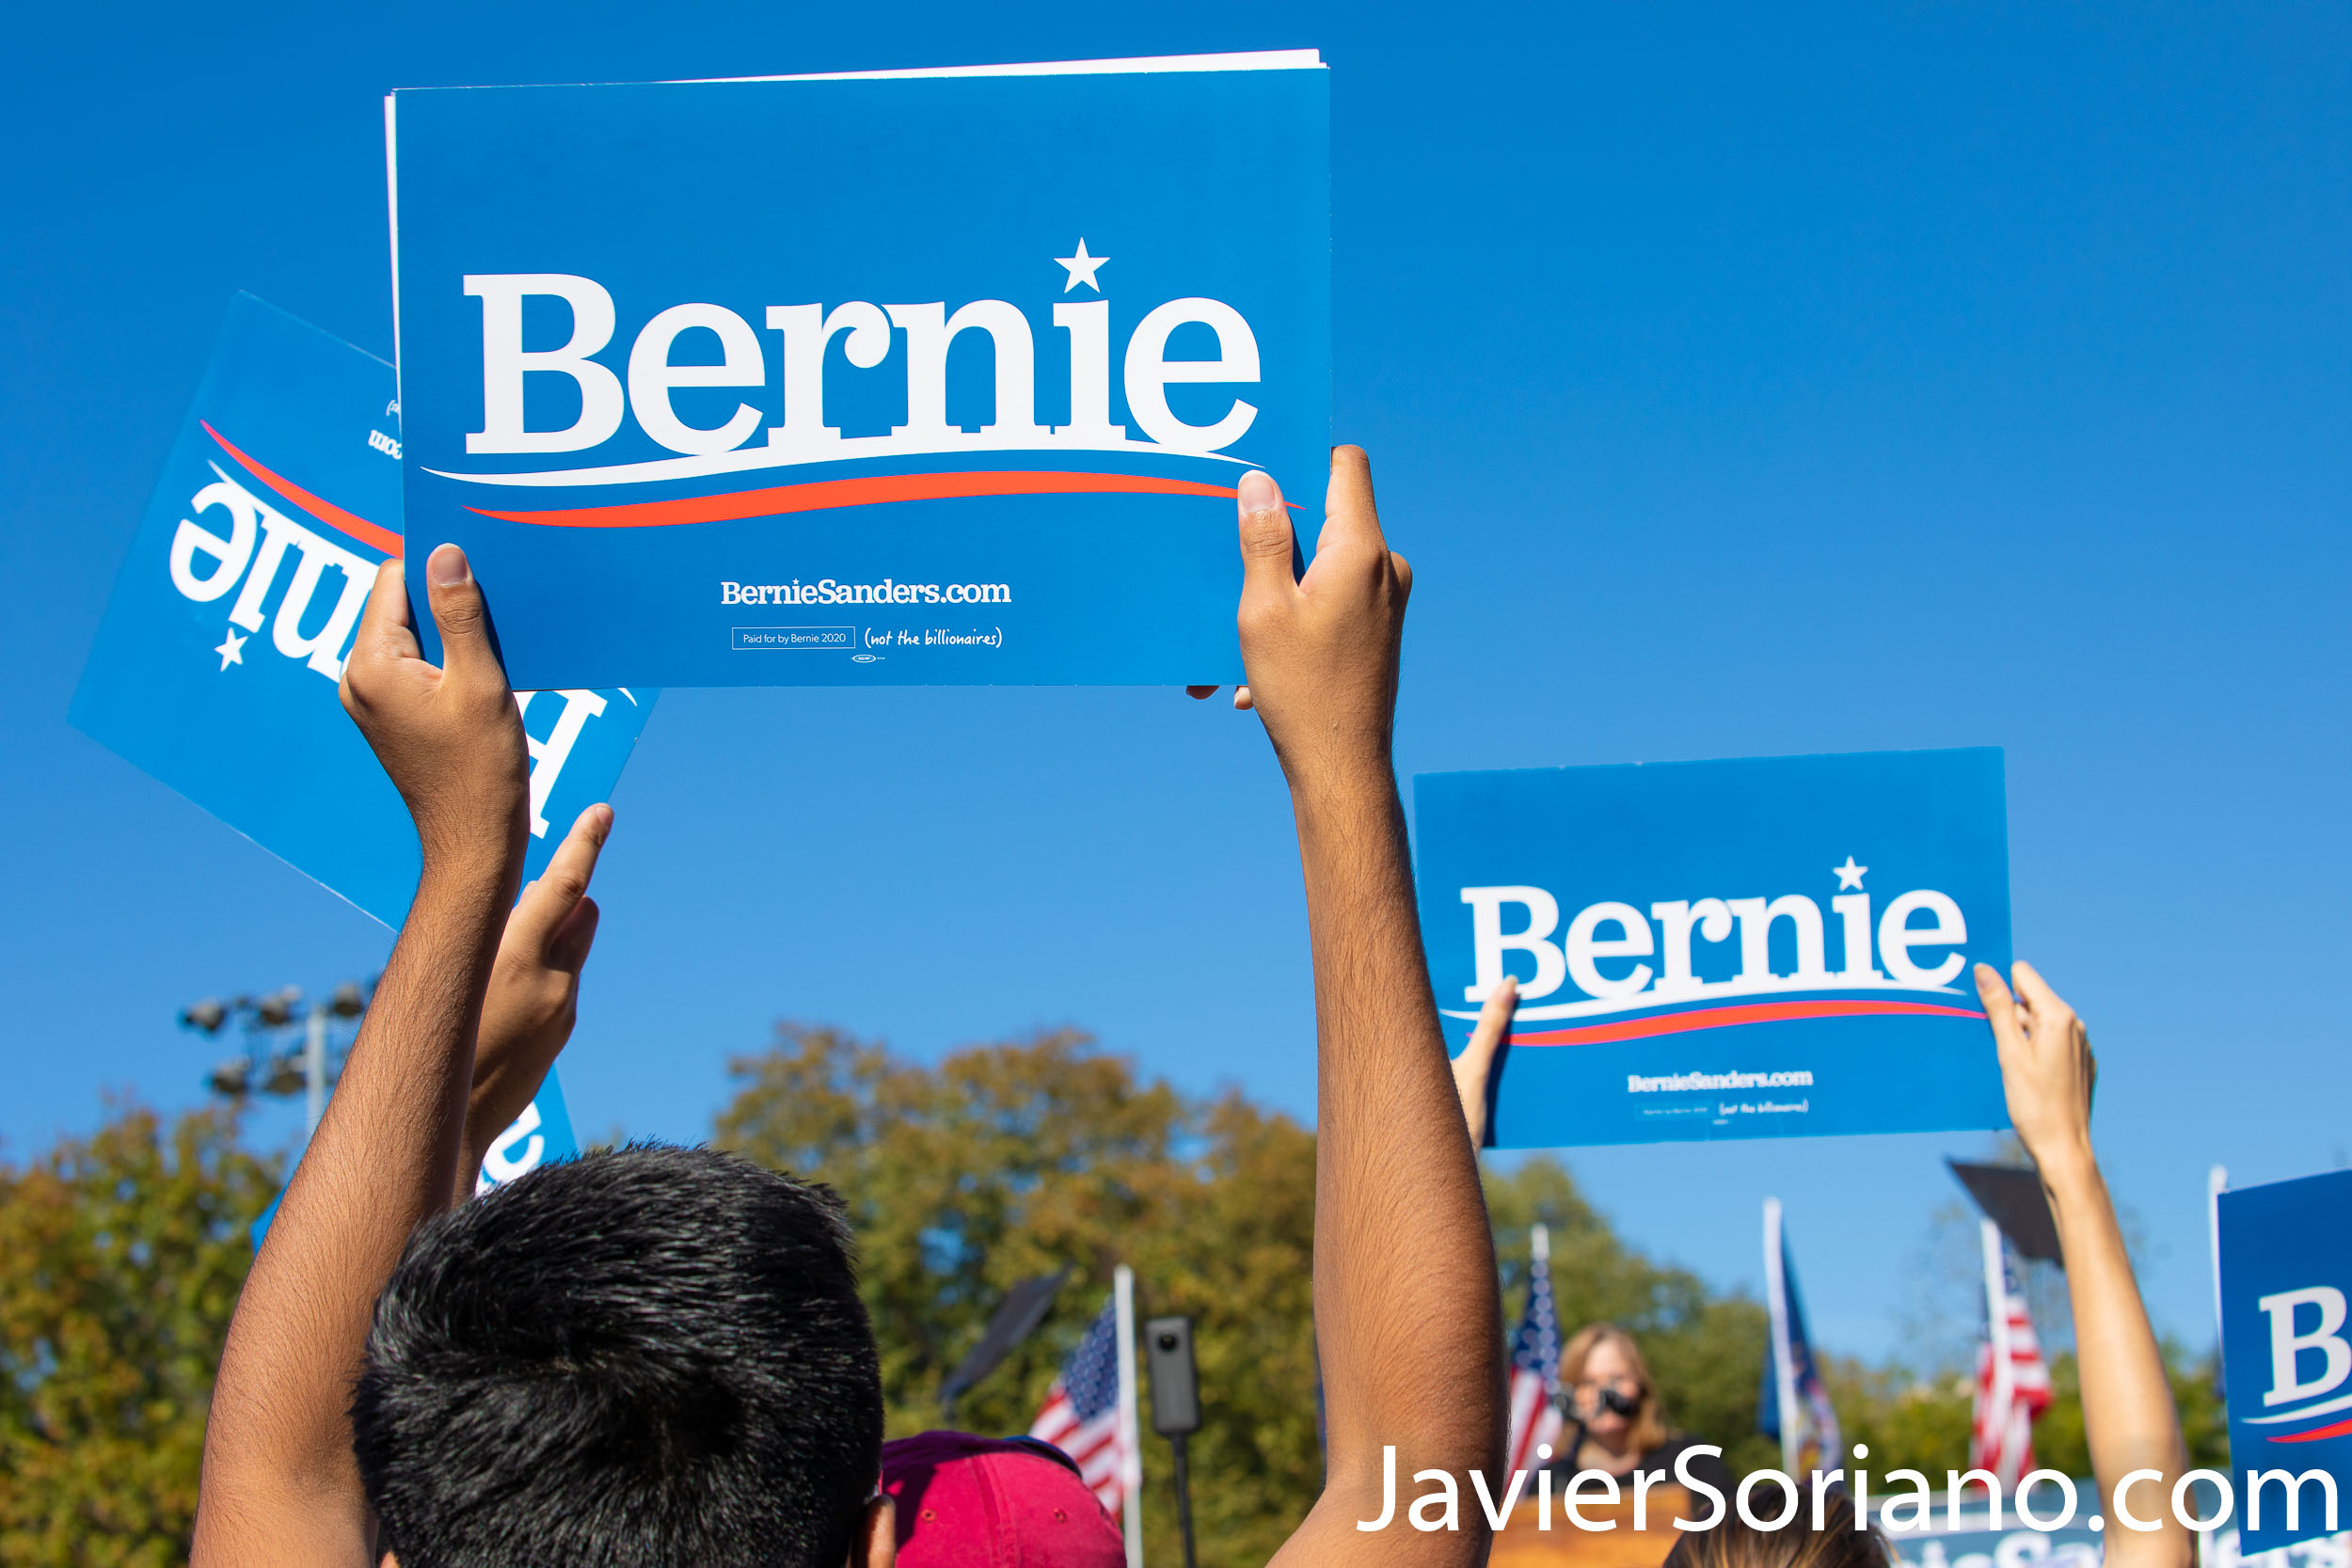 Saturday, October 19, 2019. Queens, New York City - Bernie Sanders had a rally in Queens today. Almost 26 thousand people attended the event. Photo by Javier Soriano/www.JavierSoriano.com